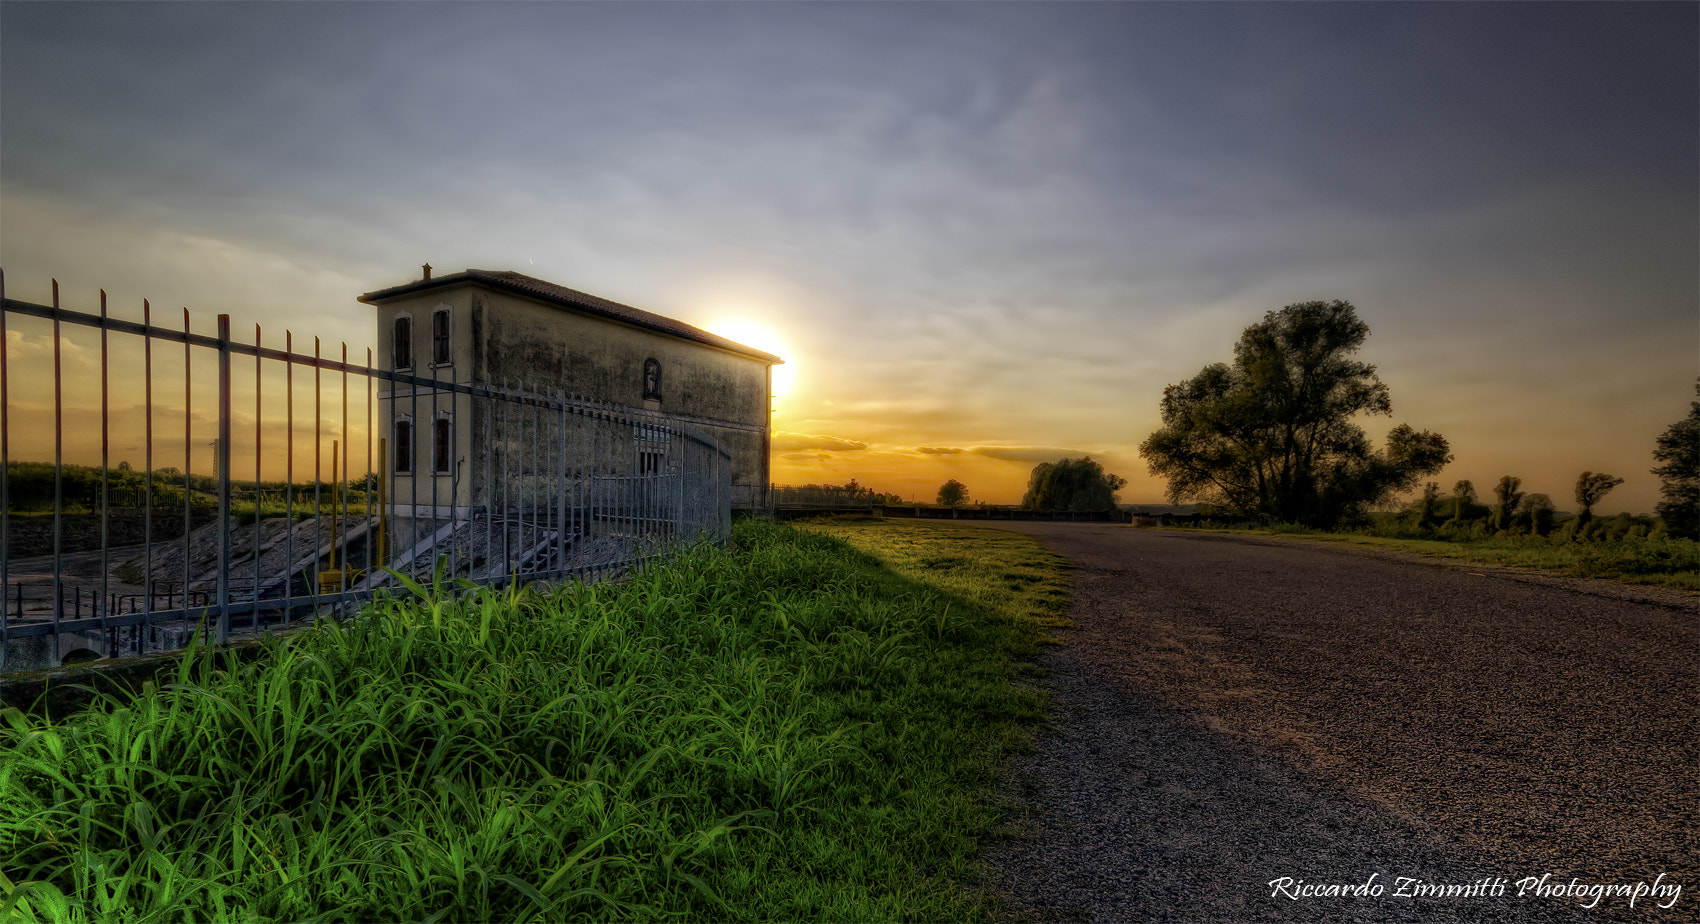 Photograph Sunset in the Po Valley by Riccardo Zimmitti on 500px